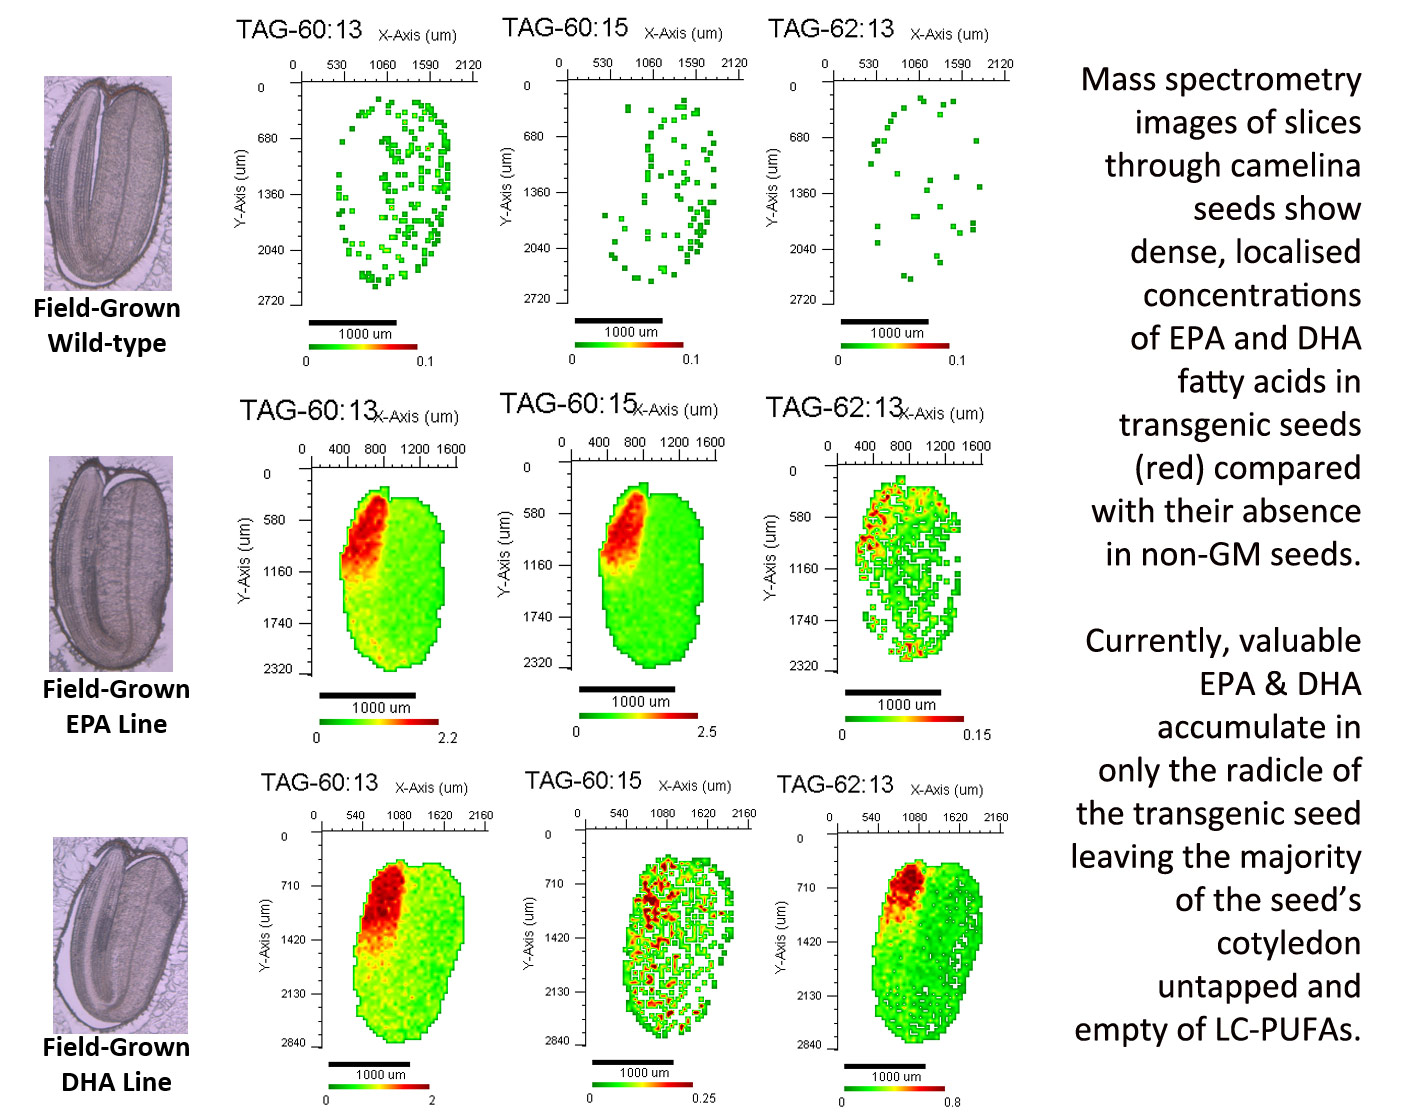 Mass spectrometry images of camelina cross-sections